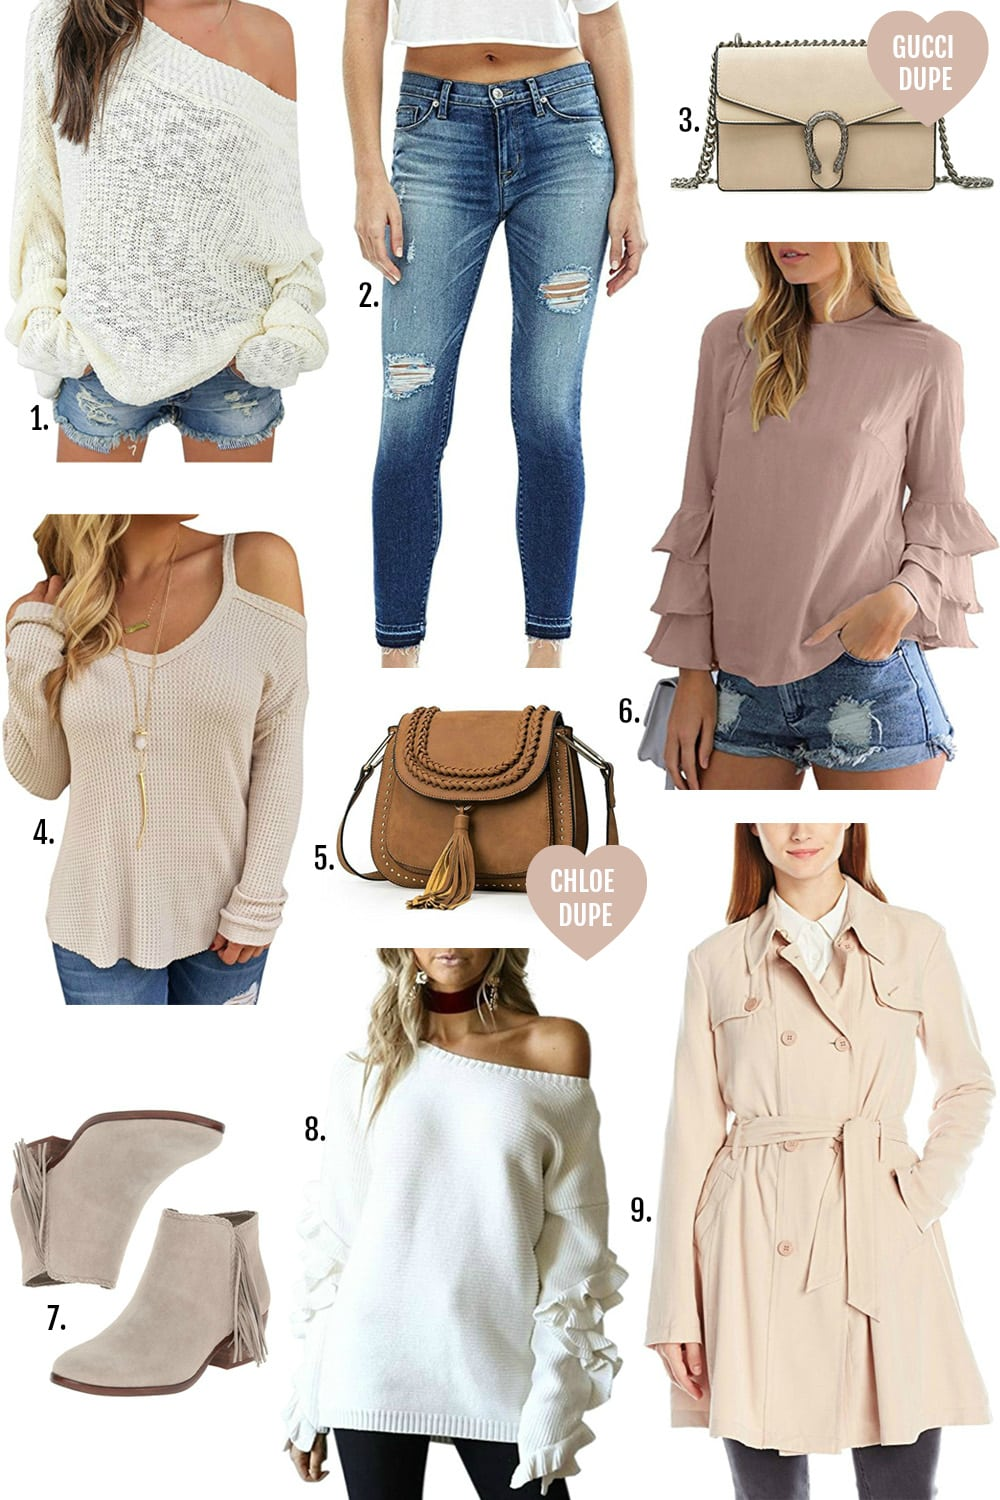 Amazon Fall fashion finds under $100 | Mash Elle fashion blogger | Gucci designer bag dupe | Chloe designer bag dupe | over the knee boots | affordable style for women | flattering trench coat | skinny ripped jeans for less | clothing for curvy girls | designer fashion dupe